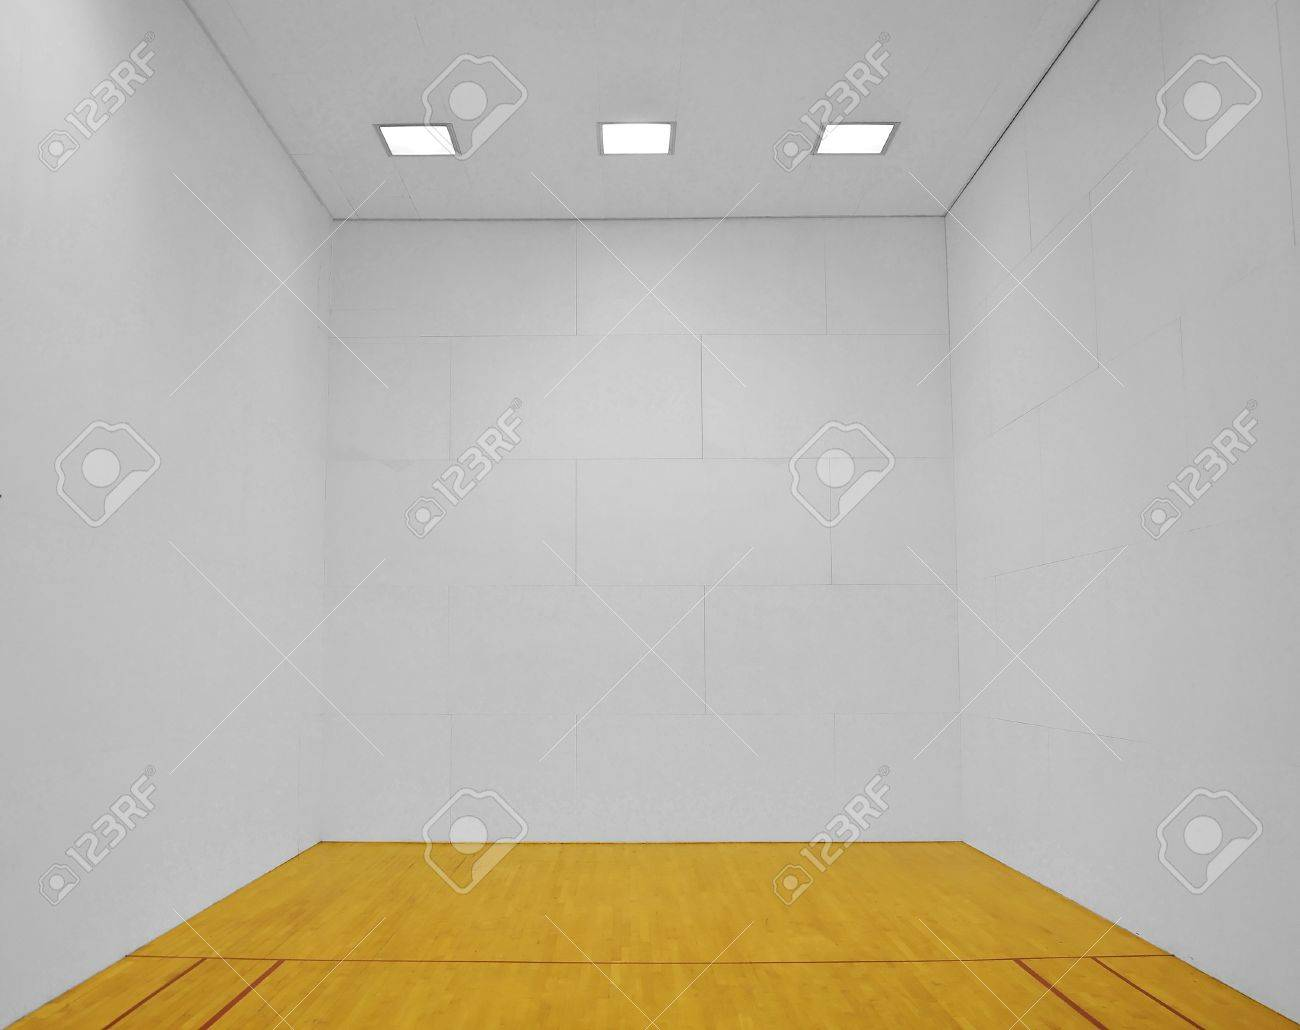 Large empty room with a wooden floor and white wooden tile walls with square lights on the ceiling and lots of open blank empty space. Stock Photo - 7680077